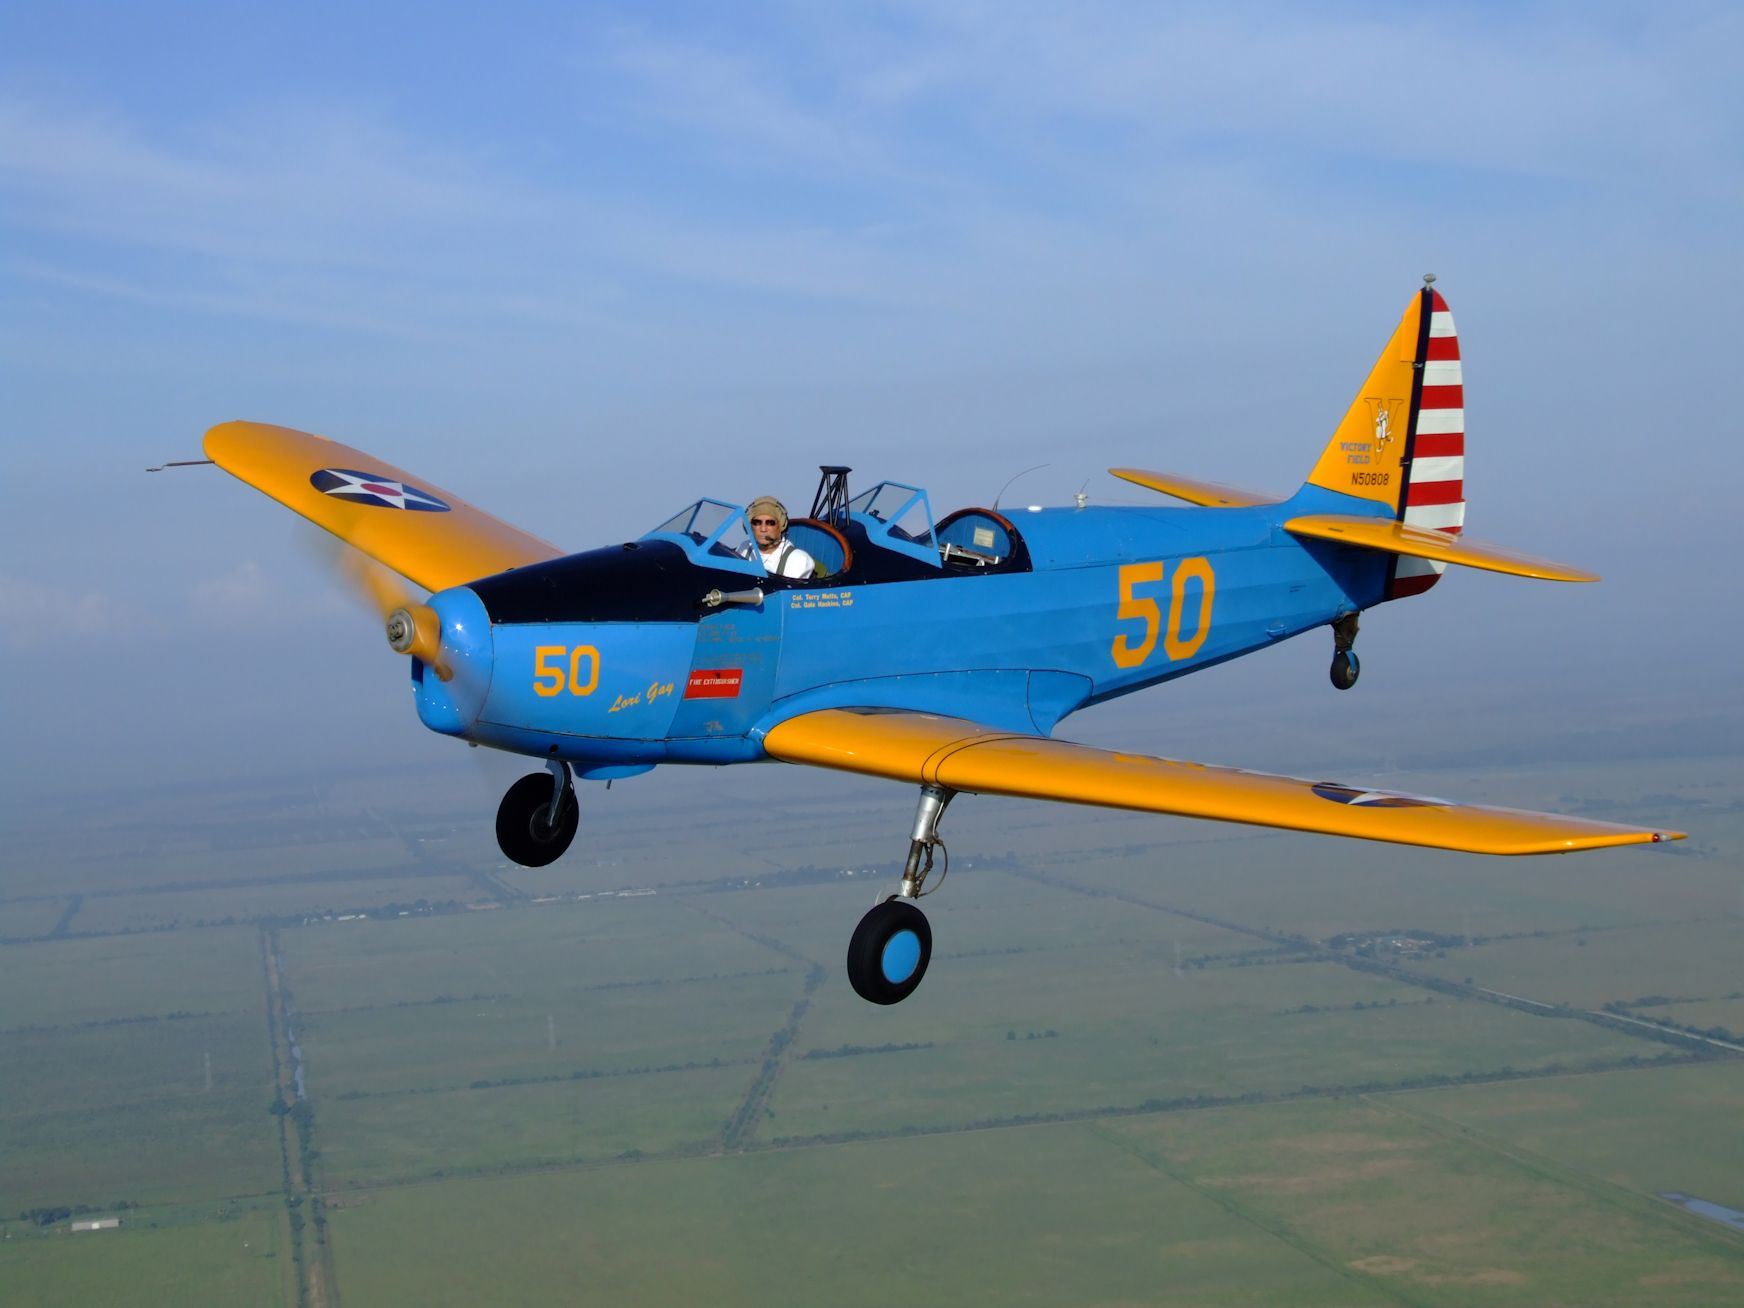 Fairchild PT-19 Cornell - Primary Trainer, CAF Aircraft